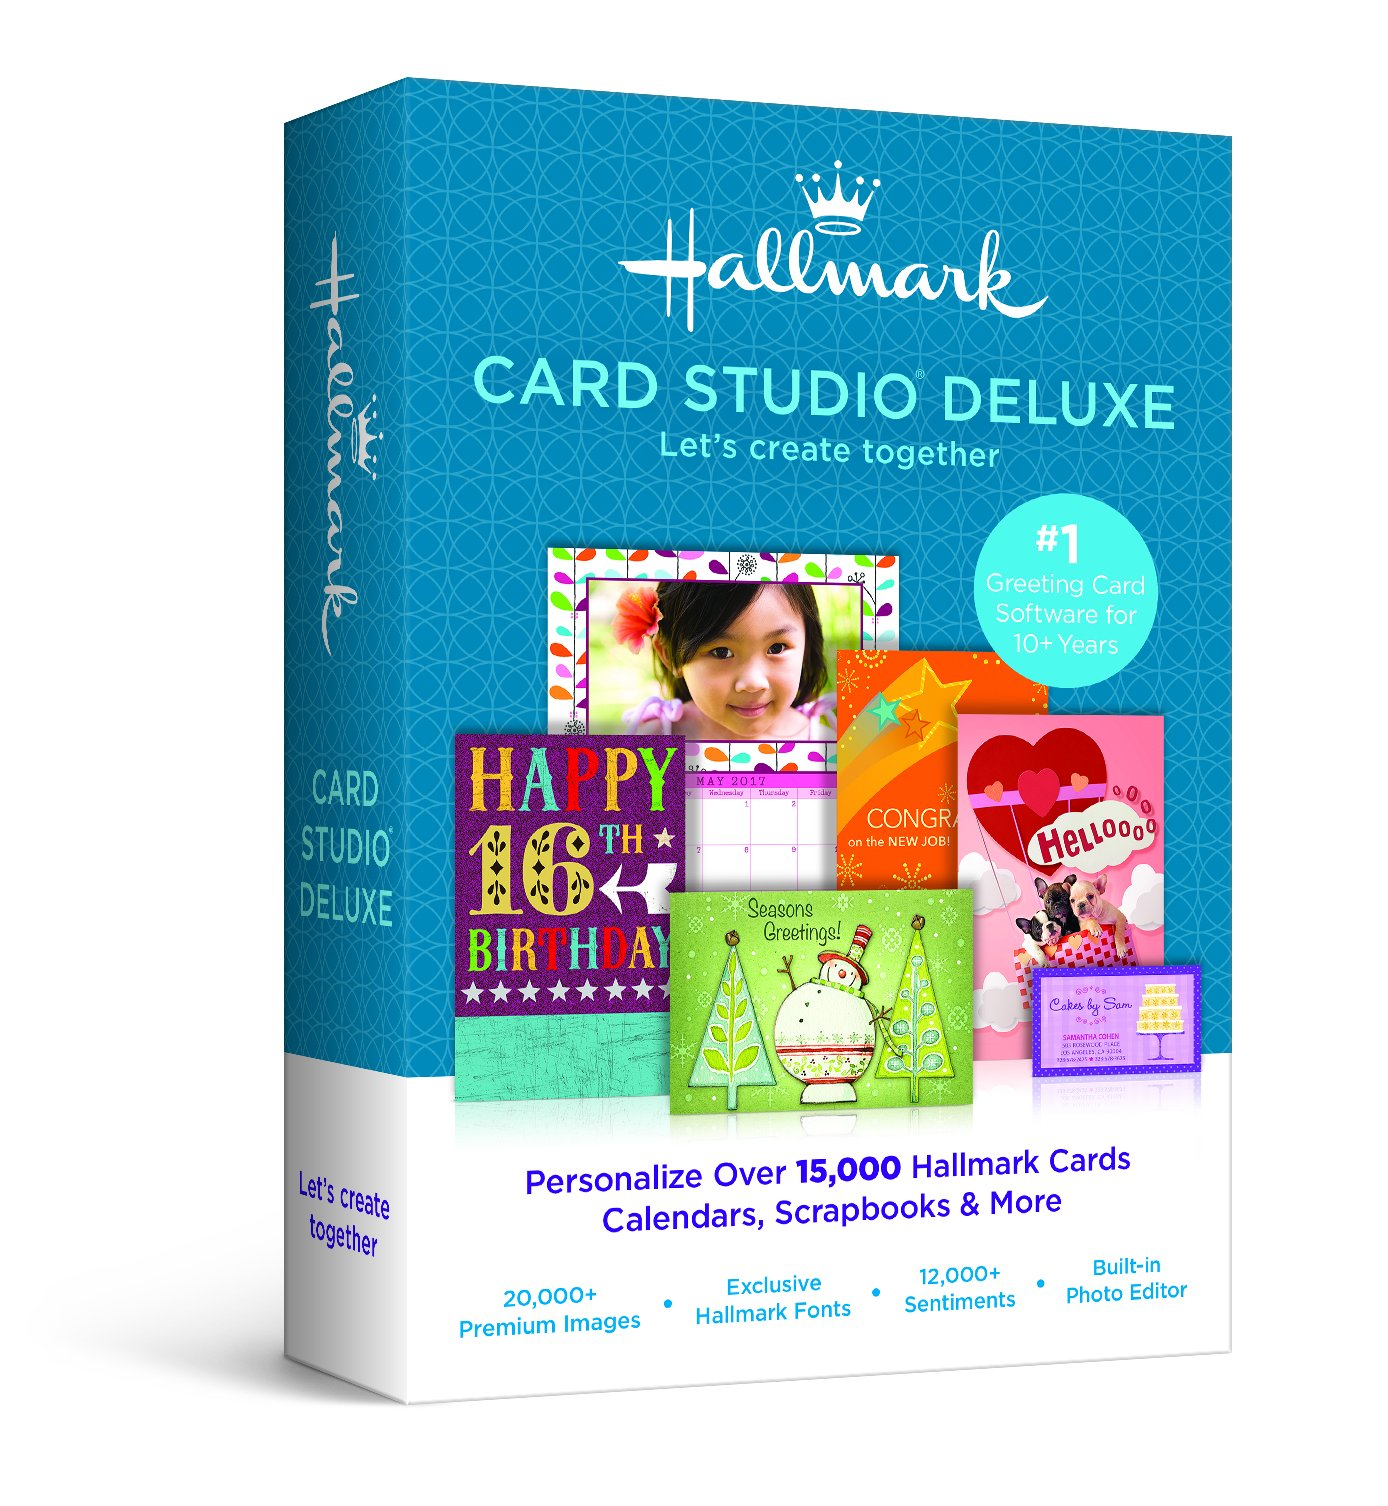 Hallmark Card Studio 2015 Deluxe by Nova Development US